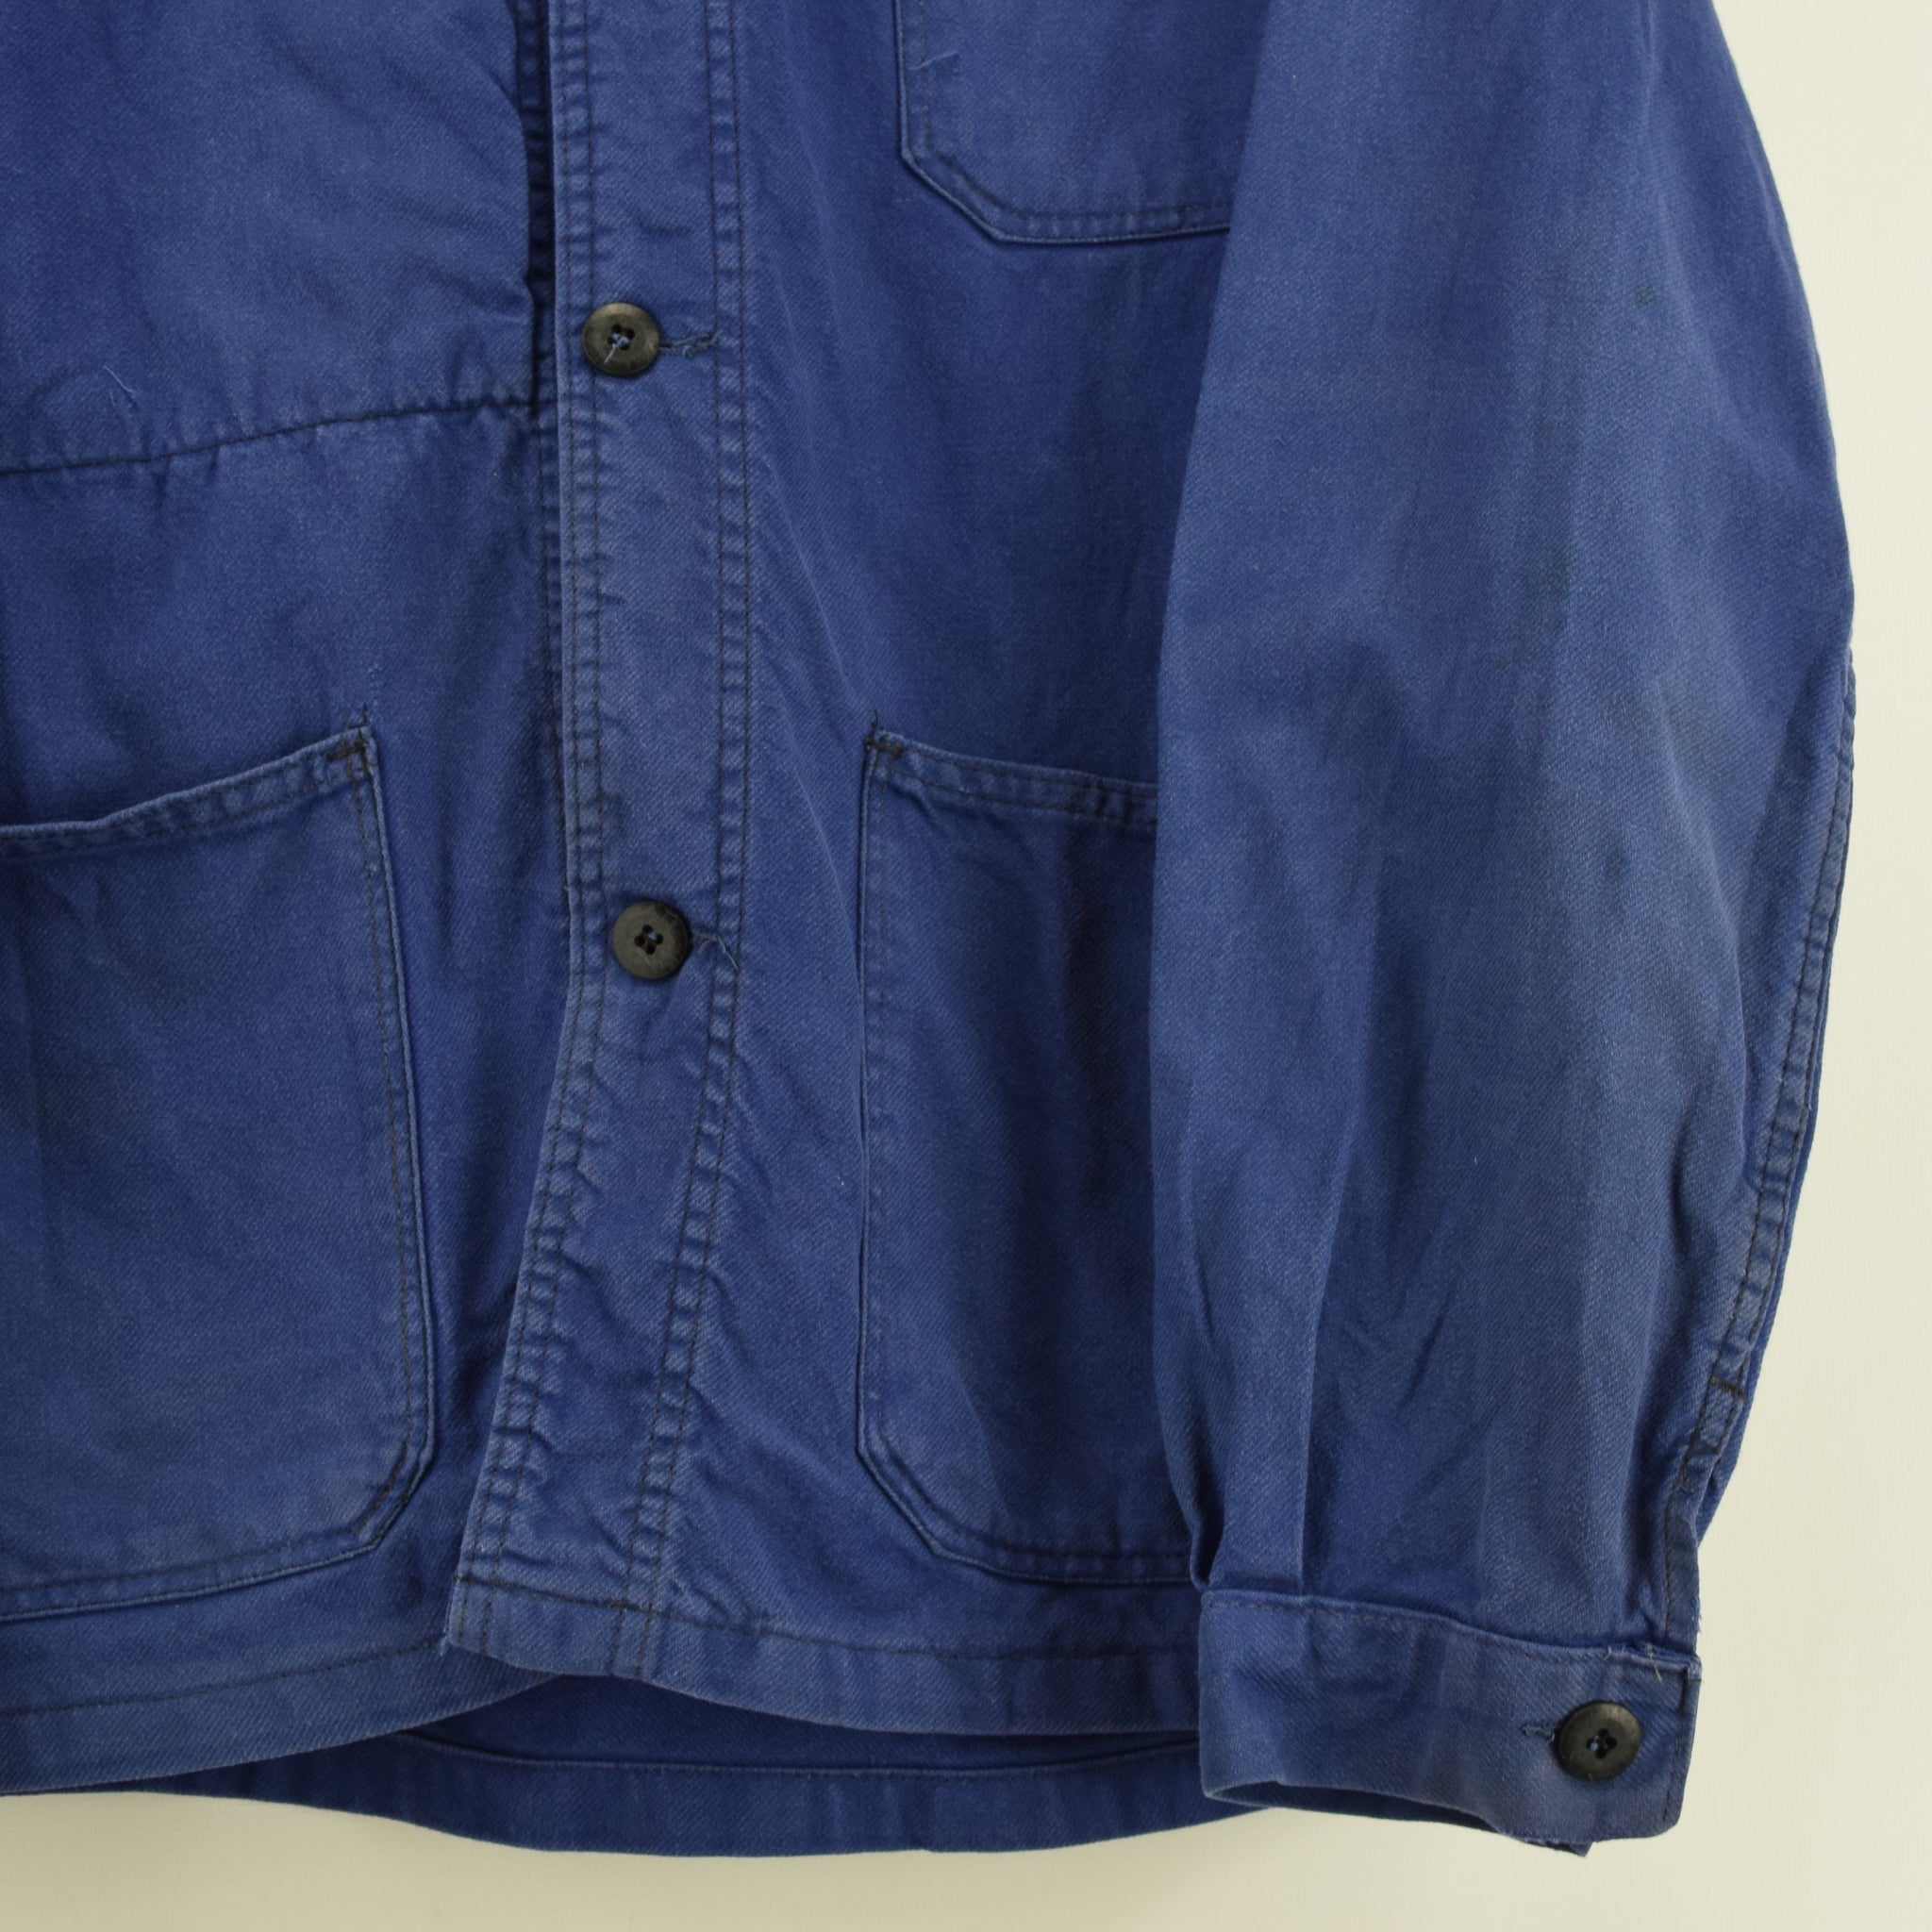 Vintage Washed Blue French Worker Sanforized Cotton Chore Jacket M front hem